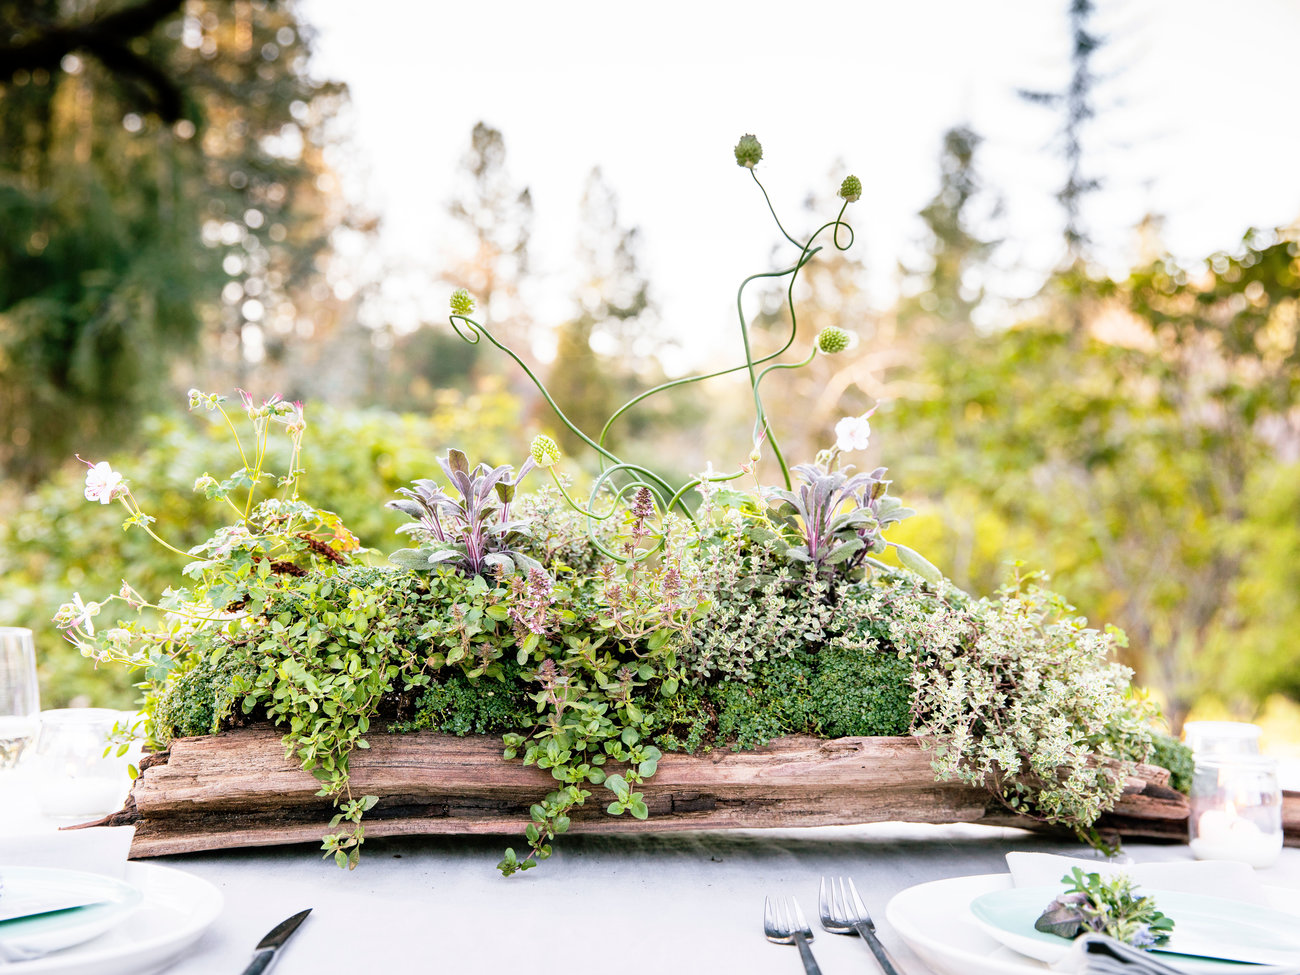 How to Set the Mood for a Chic Garden Party